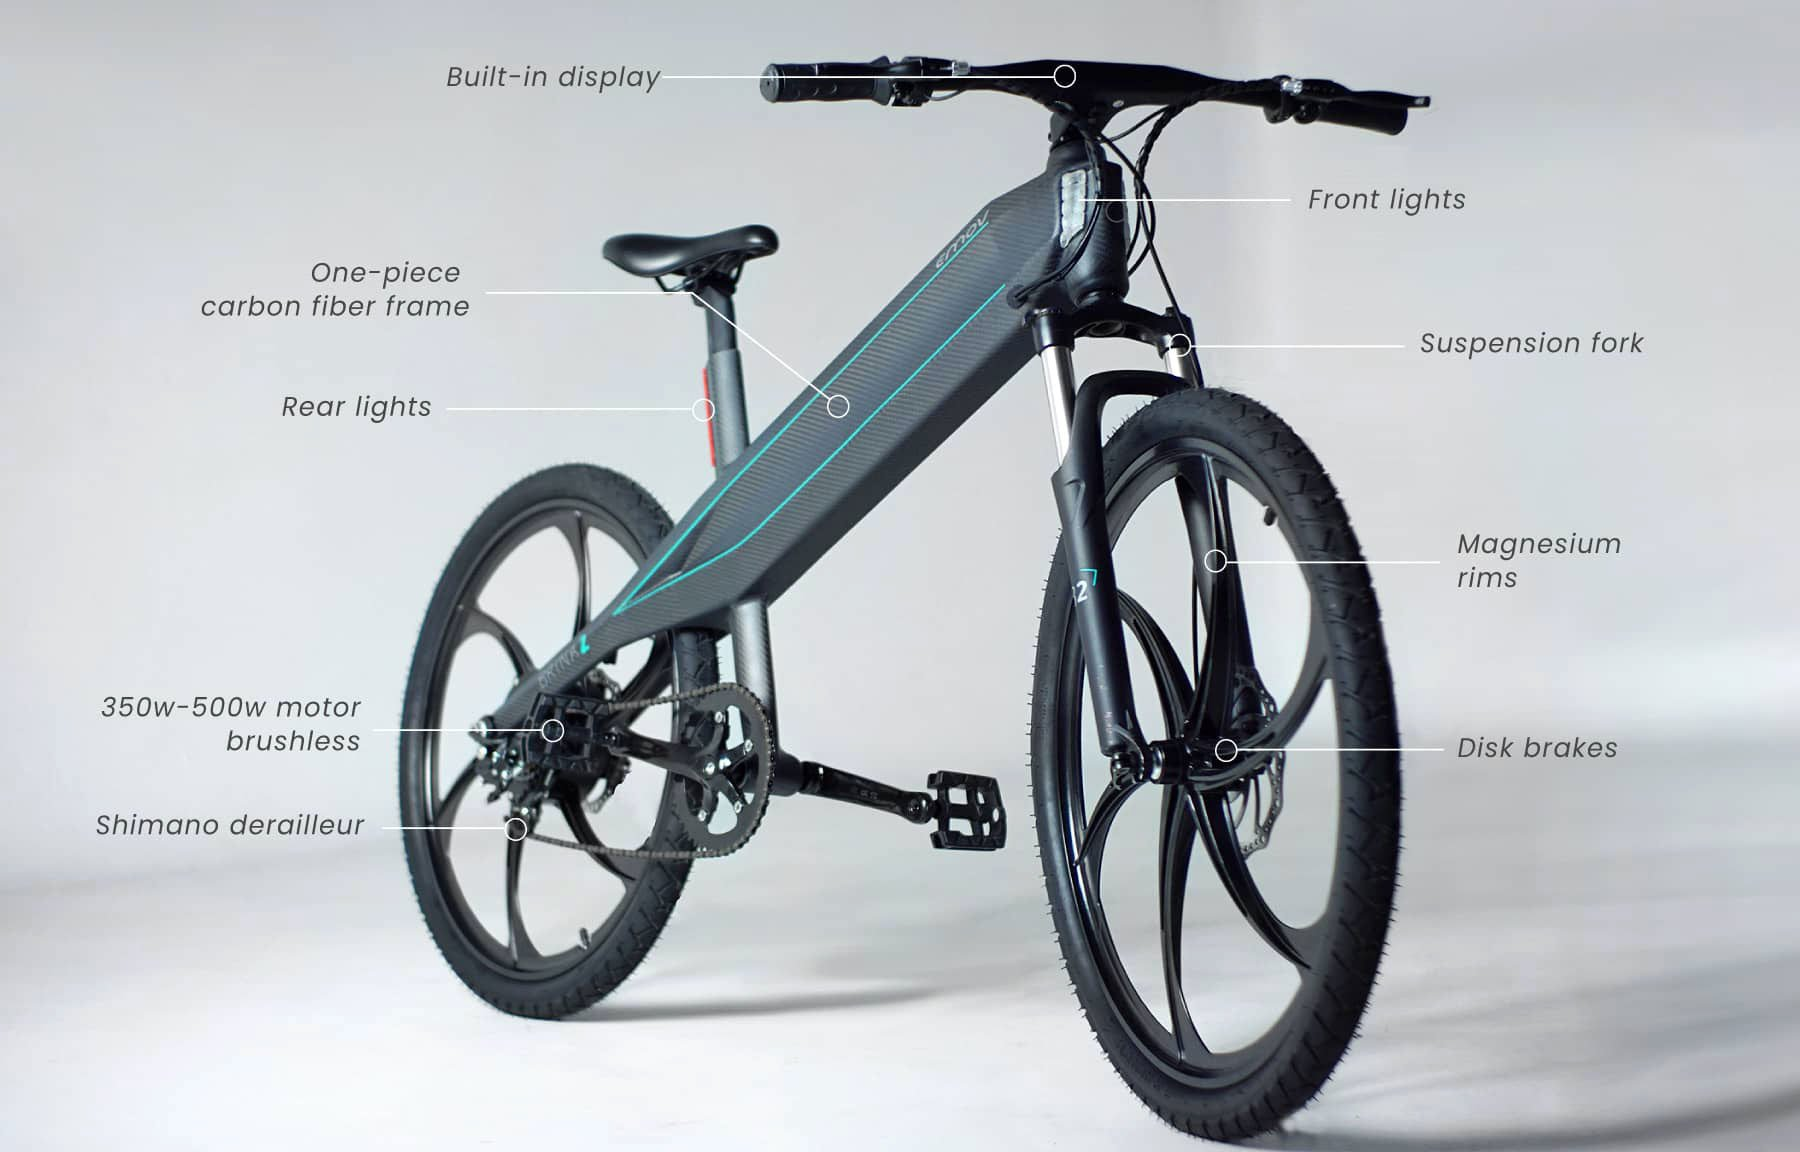 E Full In Brina 2 The First Full Hypersmart Carbon Fiber E Bike Inceptive